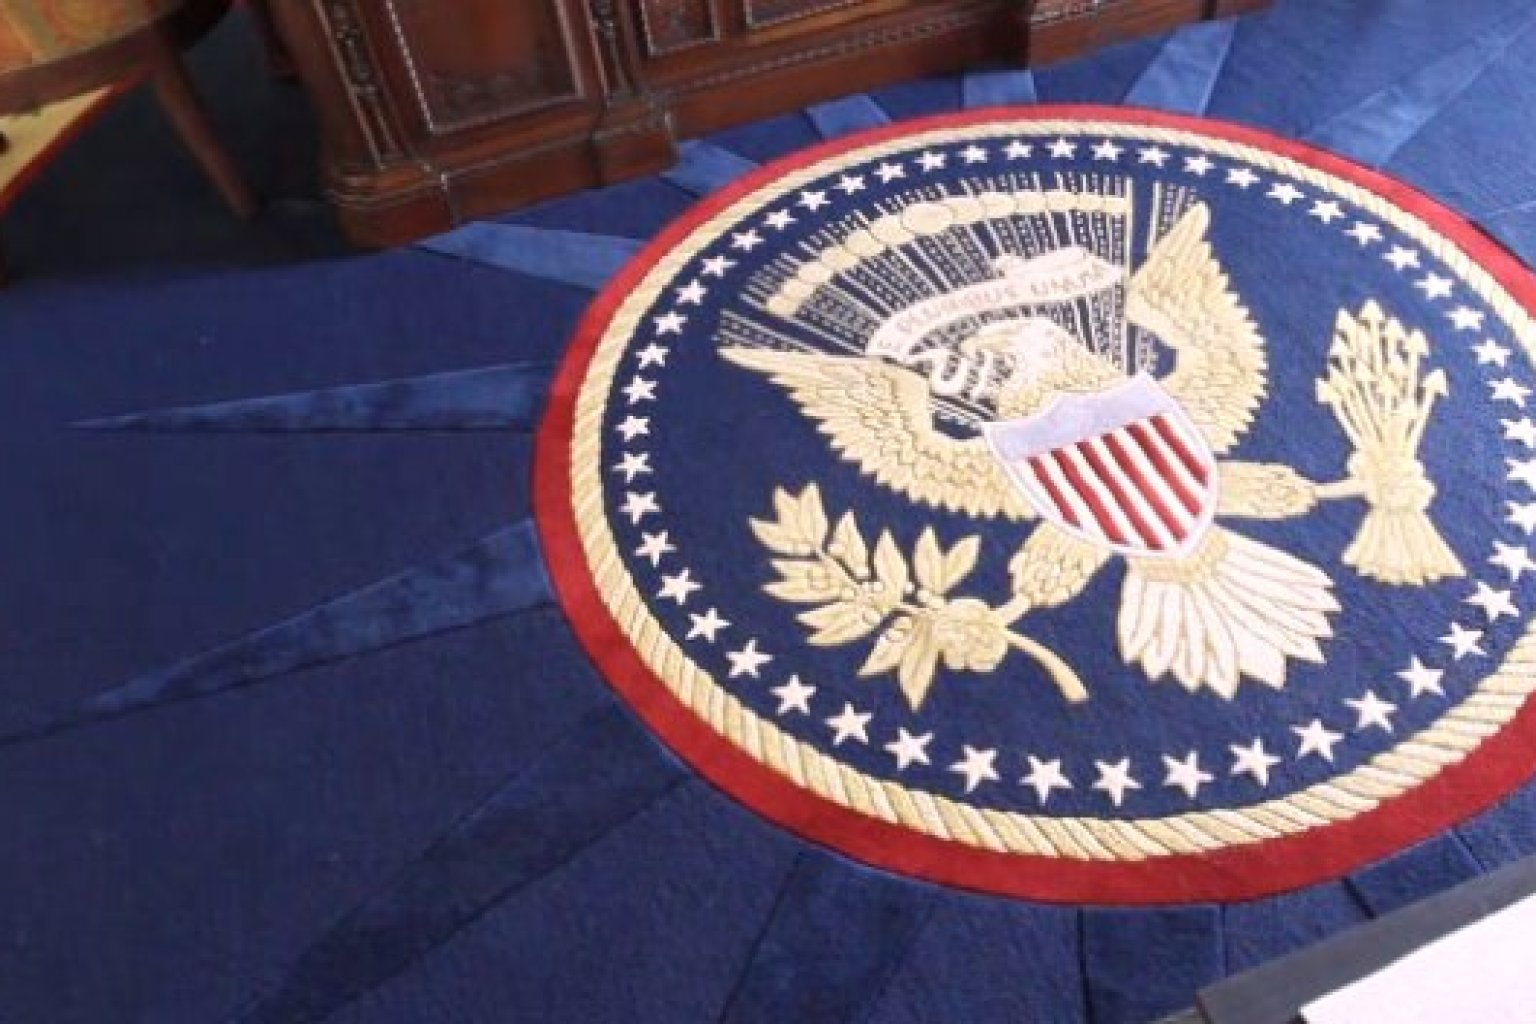 Eagle On The Oval Office Carpet - Carpet Vidalondon